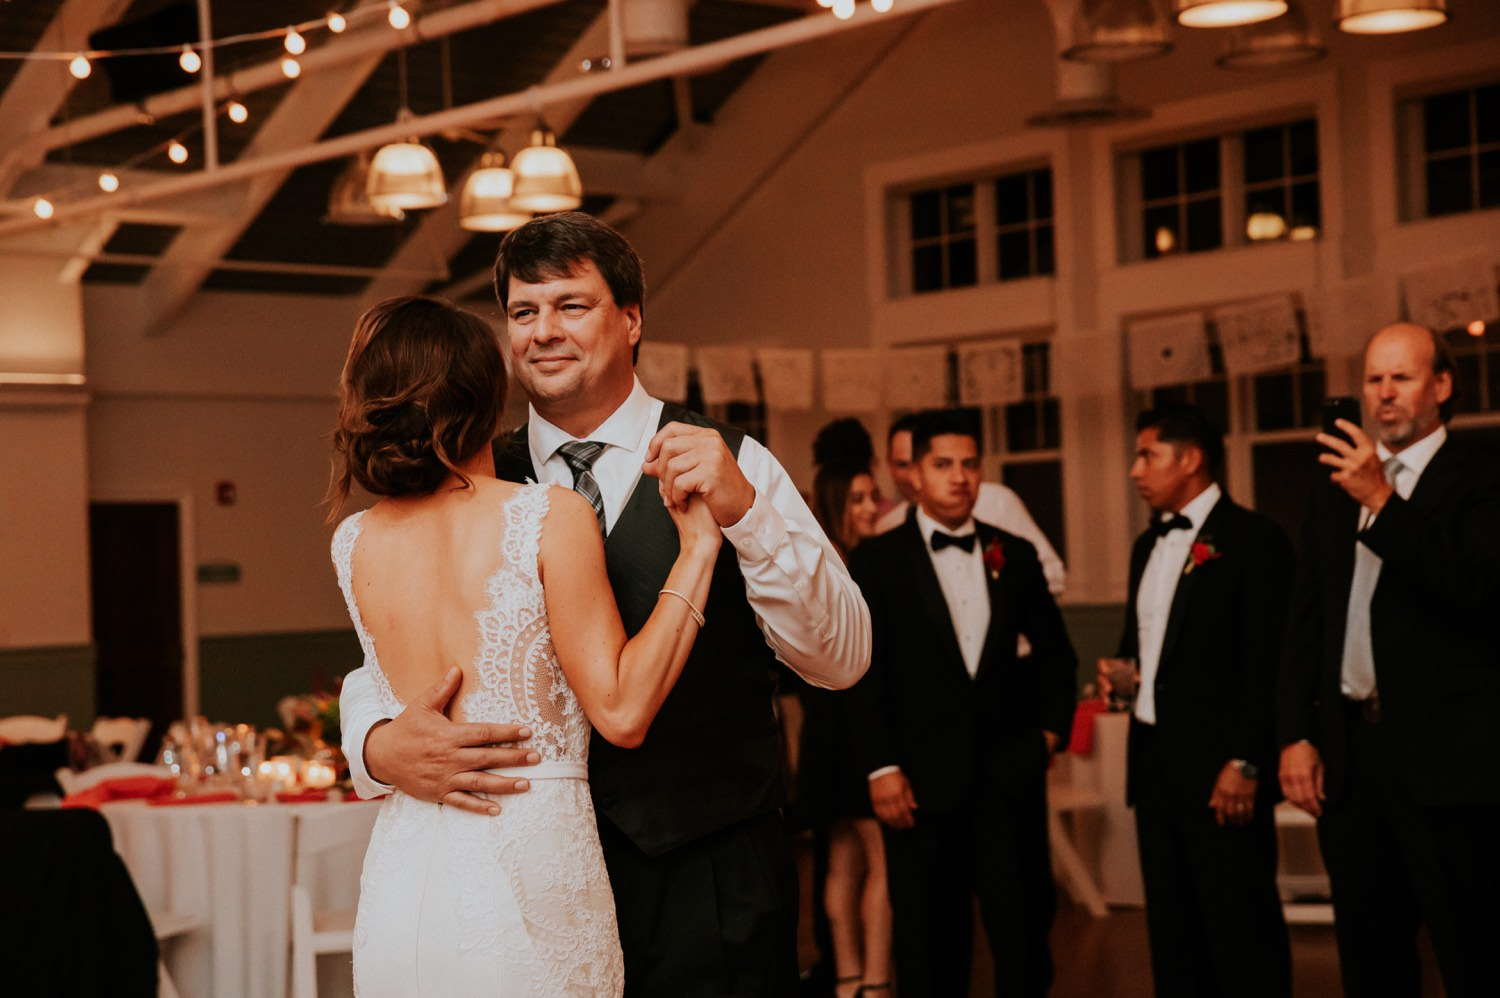 Connecticut Wedding, Glastonbury Boathouse Wedding, Connecticut Wedding Photographer, Glastonbury Wedding Photographer, Connecticut Wedding Photography, Connecticut Bride, Lovely Bride, Glastonbury Connecticut Wedding Photographer, Glastonbury Connecticut Wedding, Lake Wedding, Lake Ceremony, BOHO Wedding, Mexican Wedding, Mexican Wedding Inspiration, Multicultural Wedding, Creative Wedding Photography, Parent Dances, Bride Father